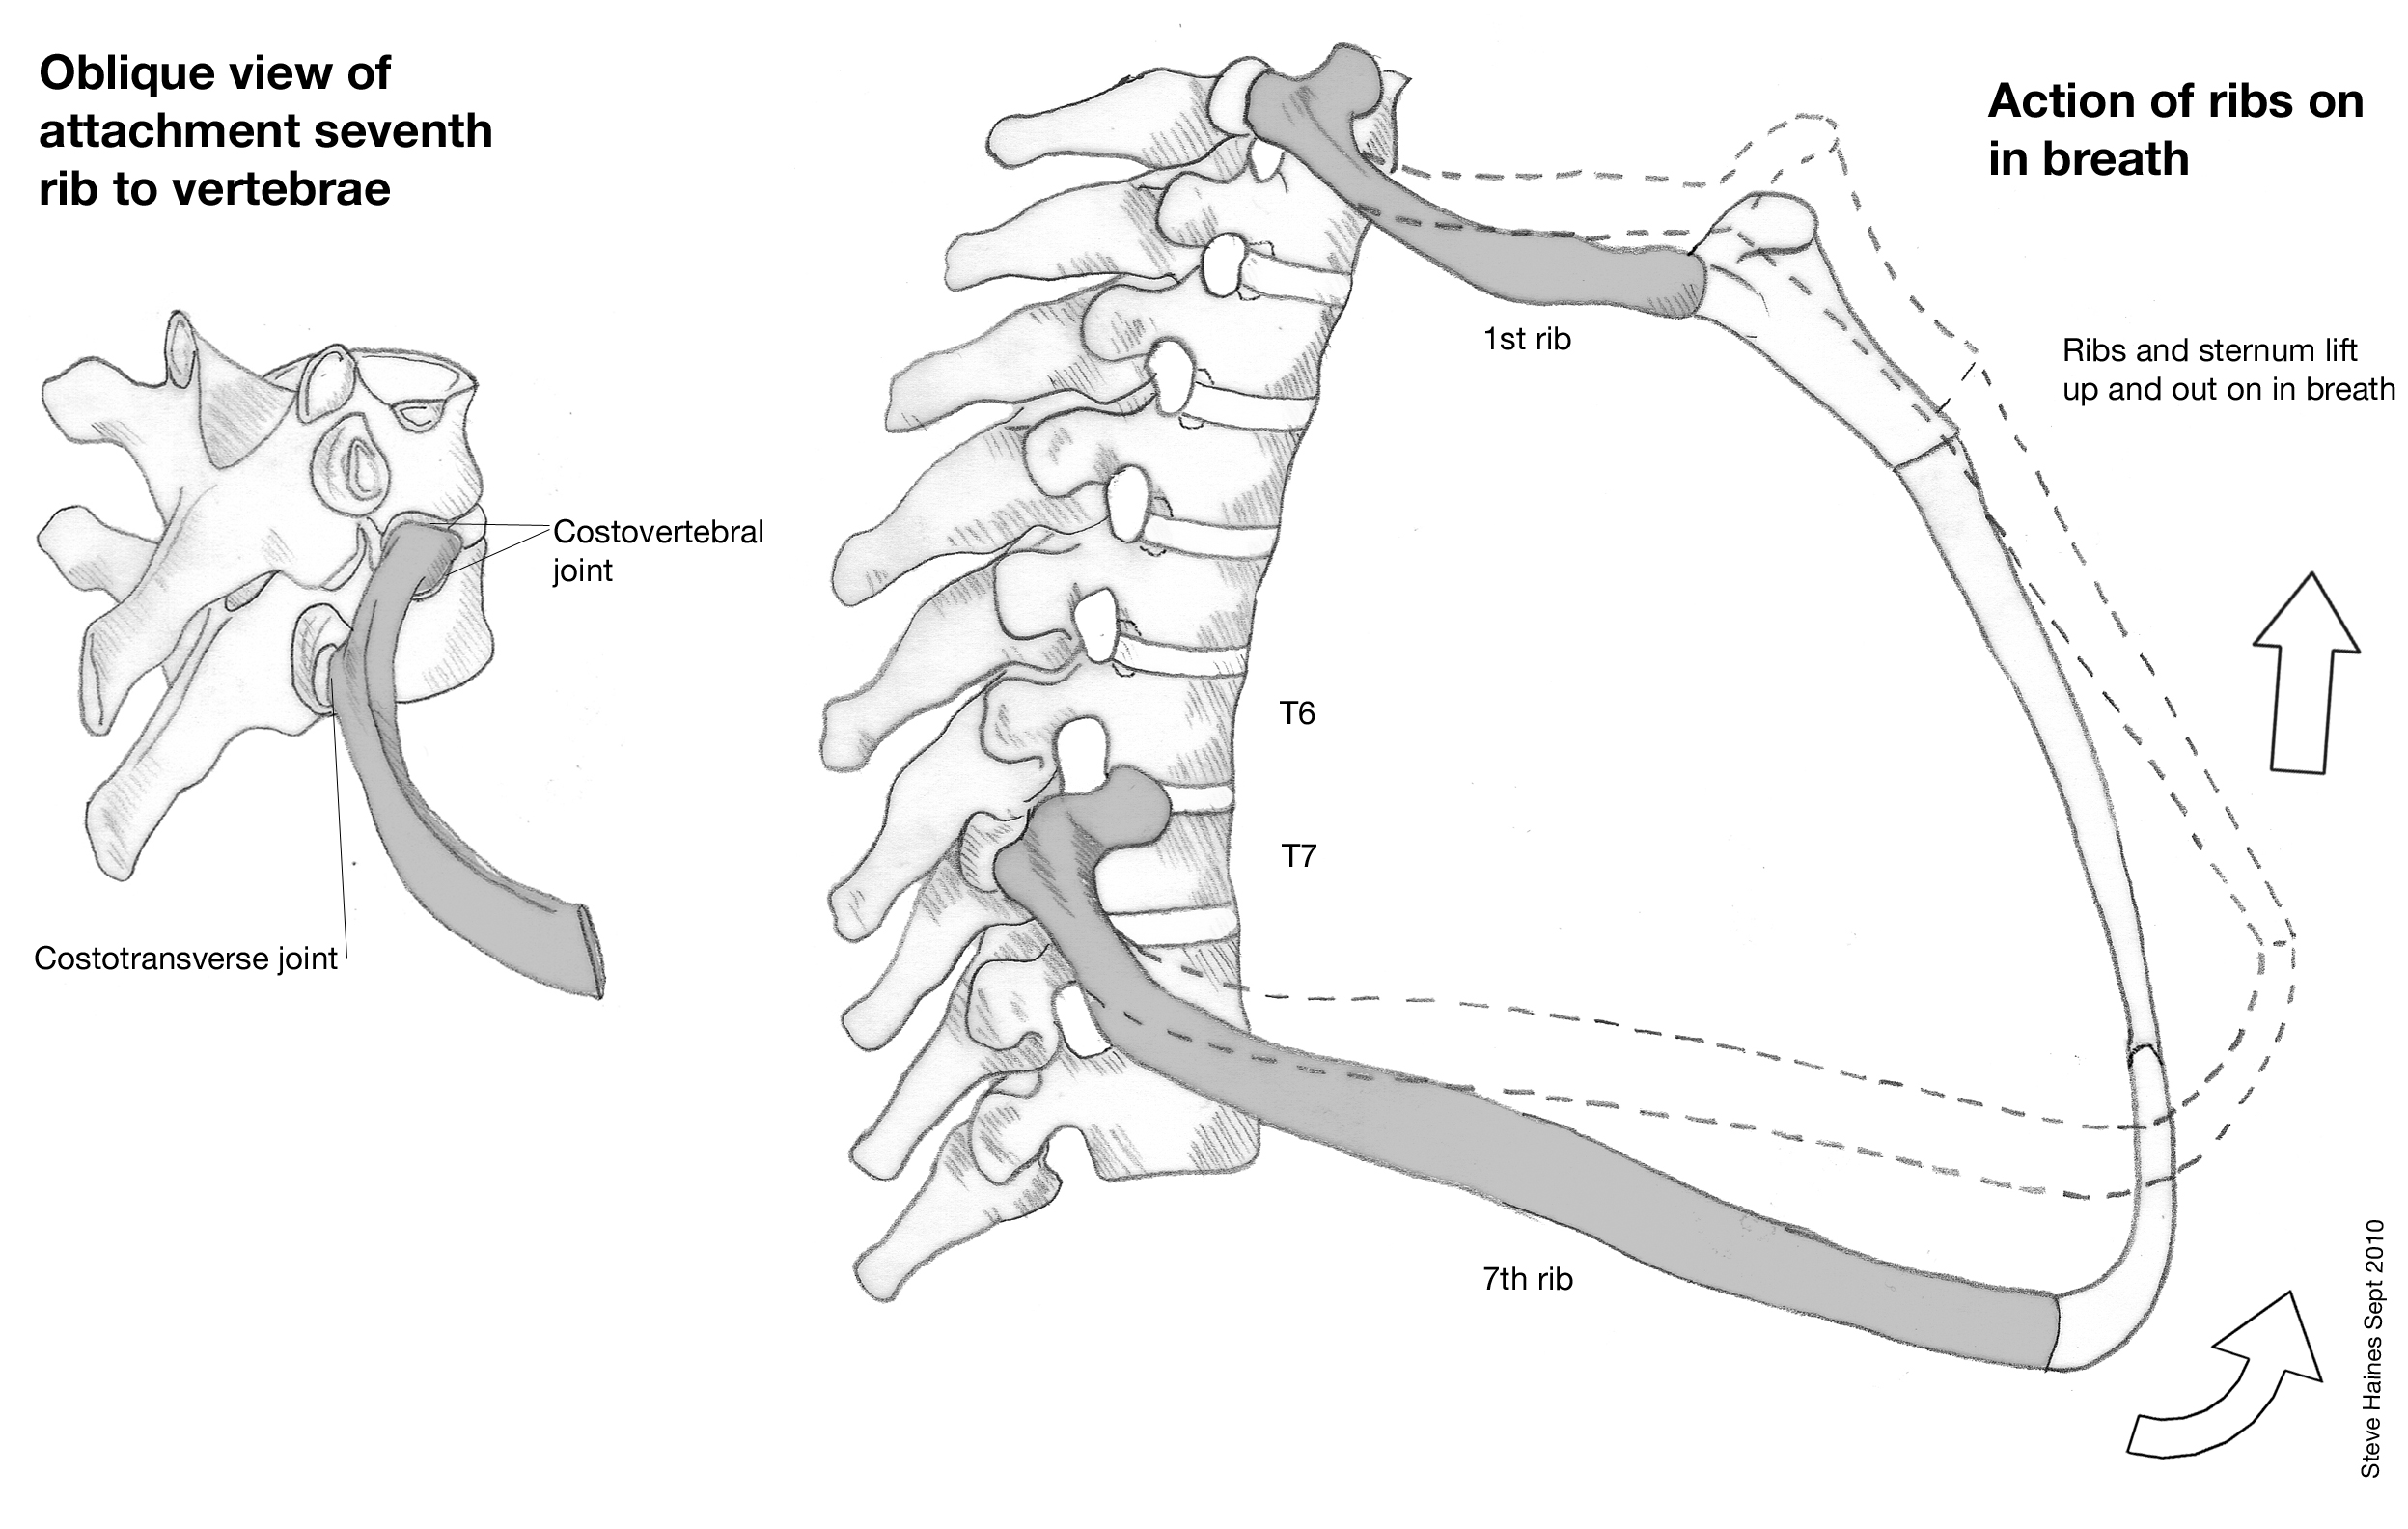 explain how the ribs is attached to the spine